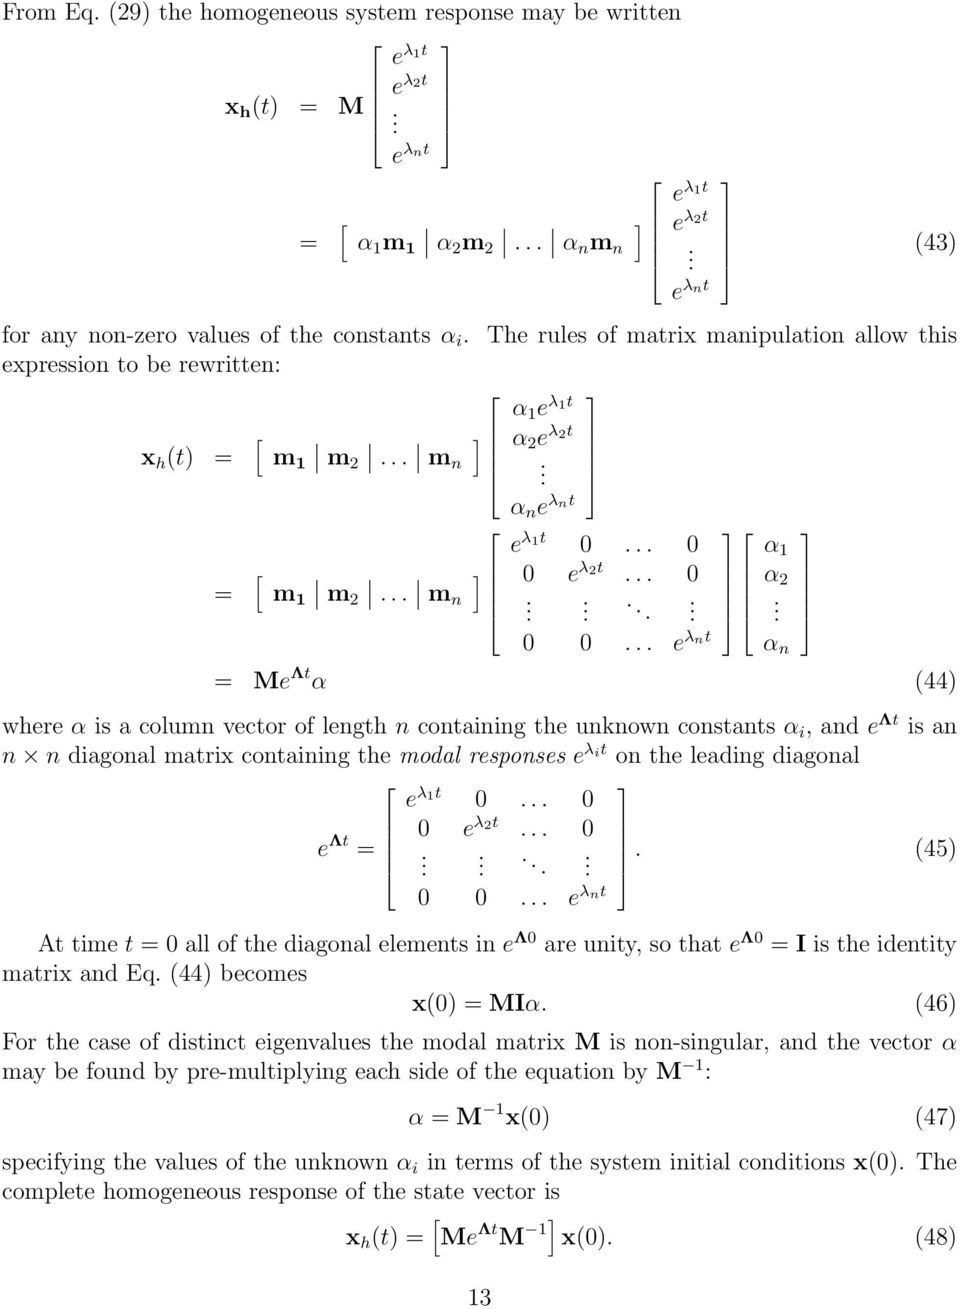 e λnt (43) Me Λt α (44) where α is a column vector of length n containing the unknown constants α i,ande Λt is an n n diagonal matrix containing the modal responses e λit on the leading diagonal e λ